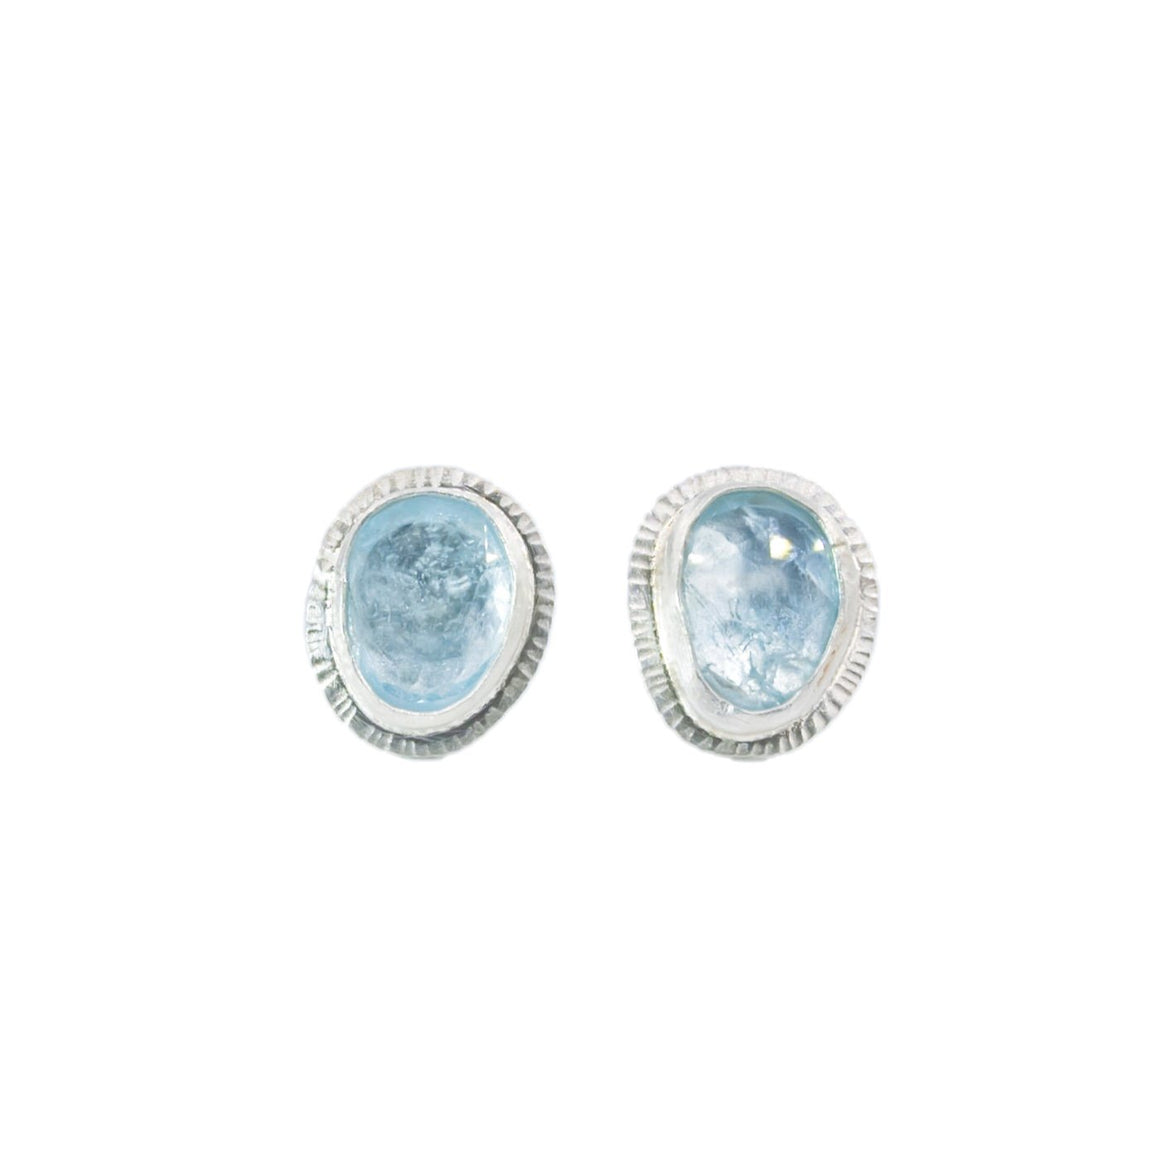 Rose Cut Aquamarine Stud Earrings by Original Sin Jewelry